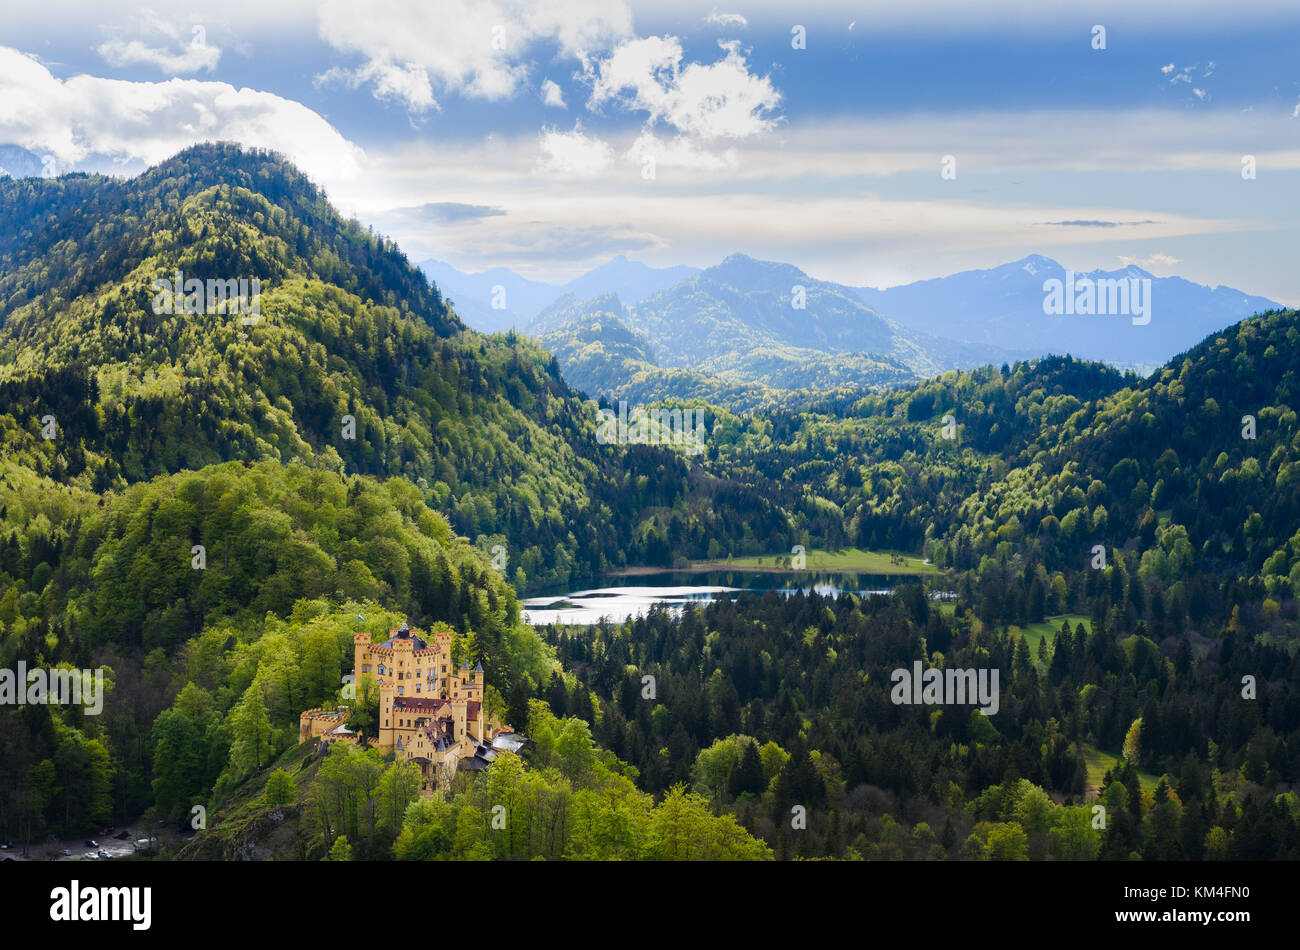 Panorama of the  Alpsee lake and its forest, under a partially cloudy sky, near Neuschwanstein, in Bavaria, Germany. - Stock Image